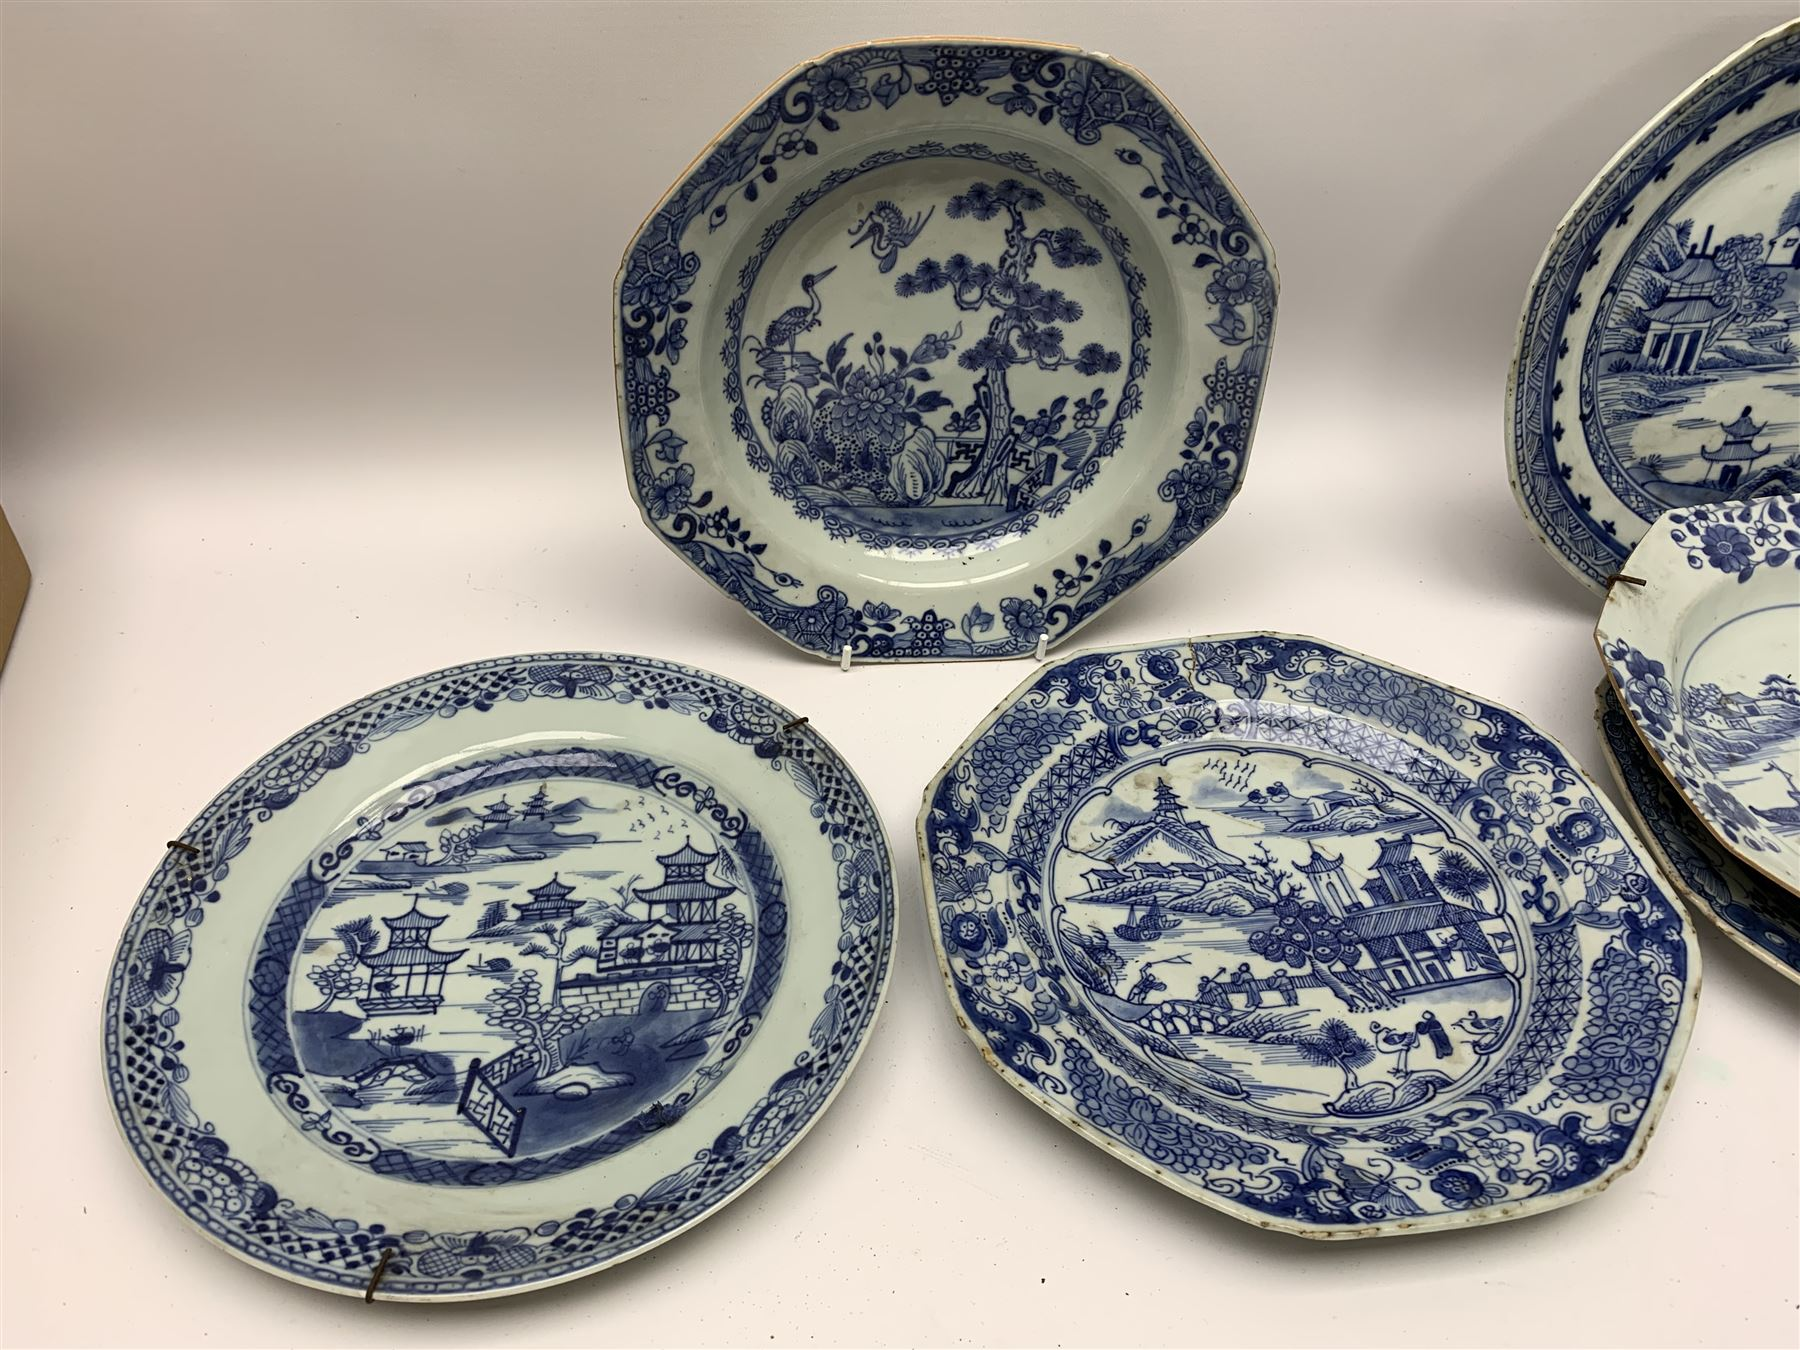 Late 18th/early 19th century Chinese export blue and white porcelain - Image 3 of 5